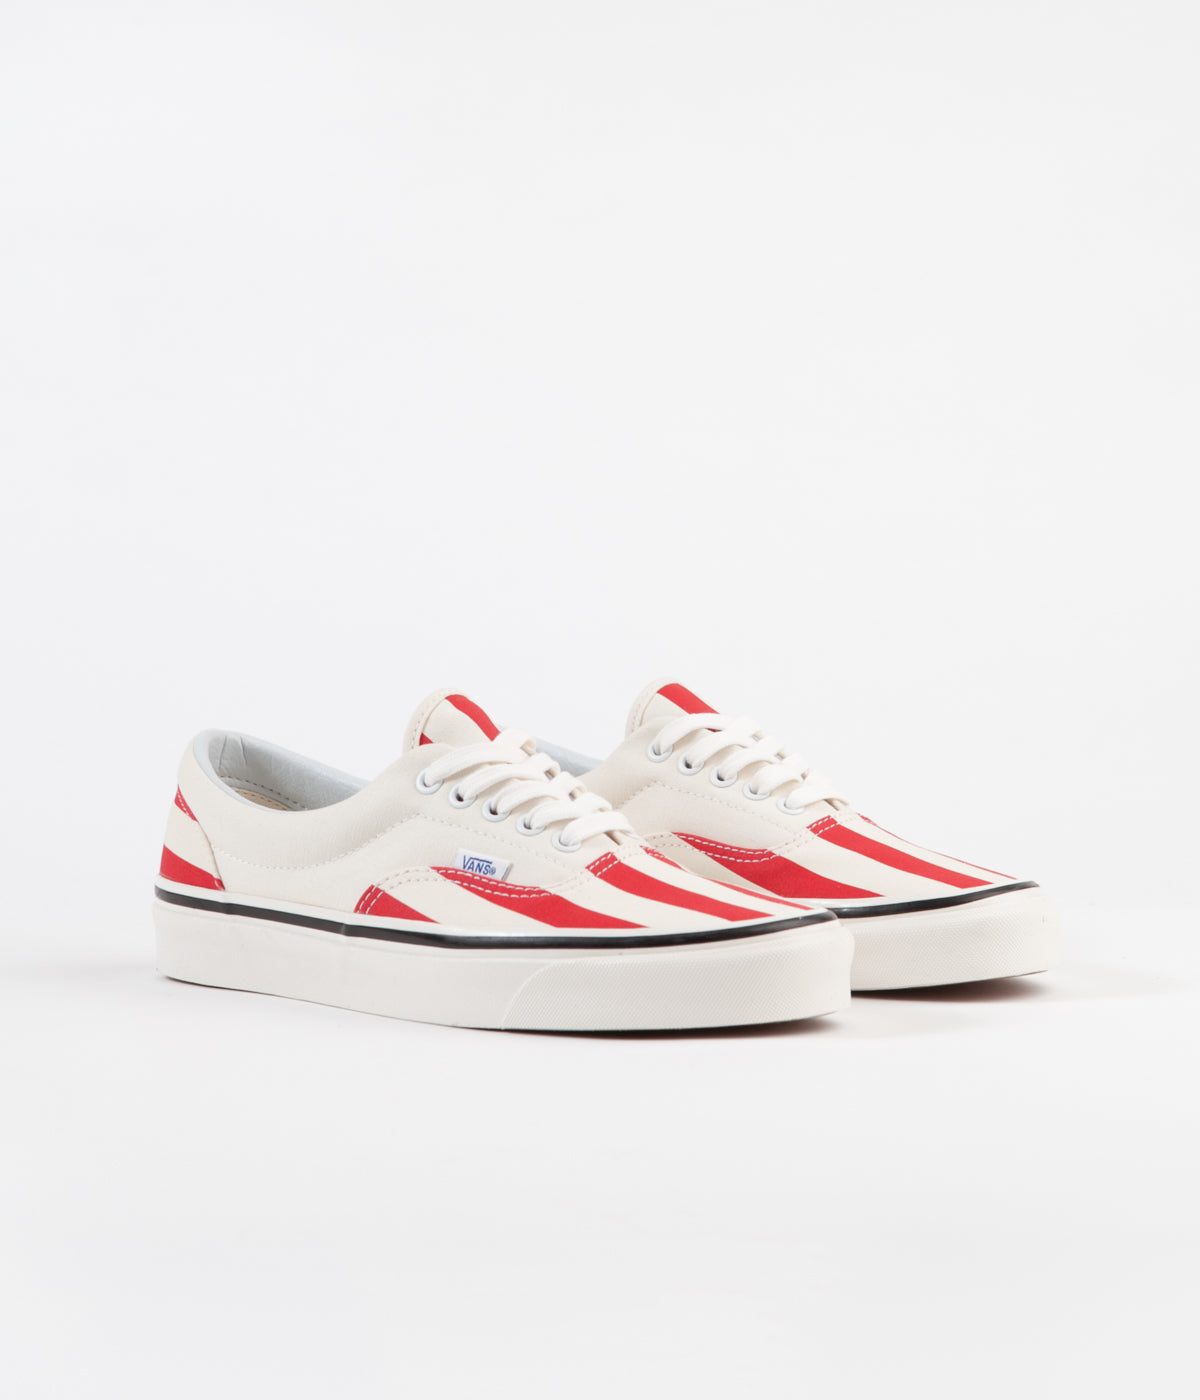 56a77a92e6 ... Vans Era 95 DX Anaheim Factory Shoes - OG White   OG Red   Big Stripes  ...